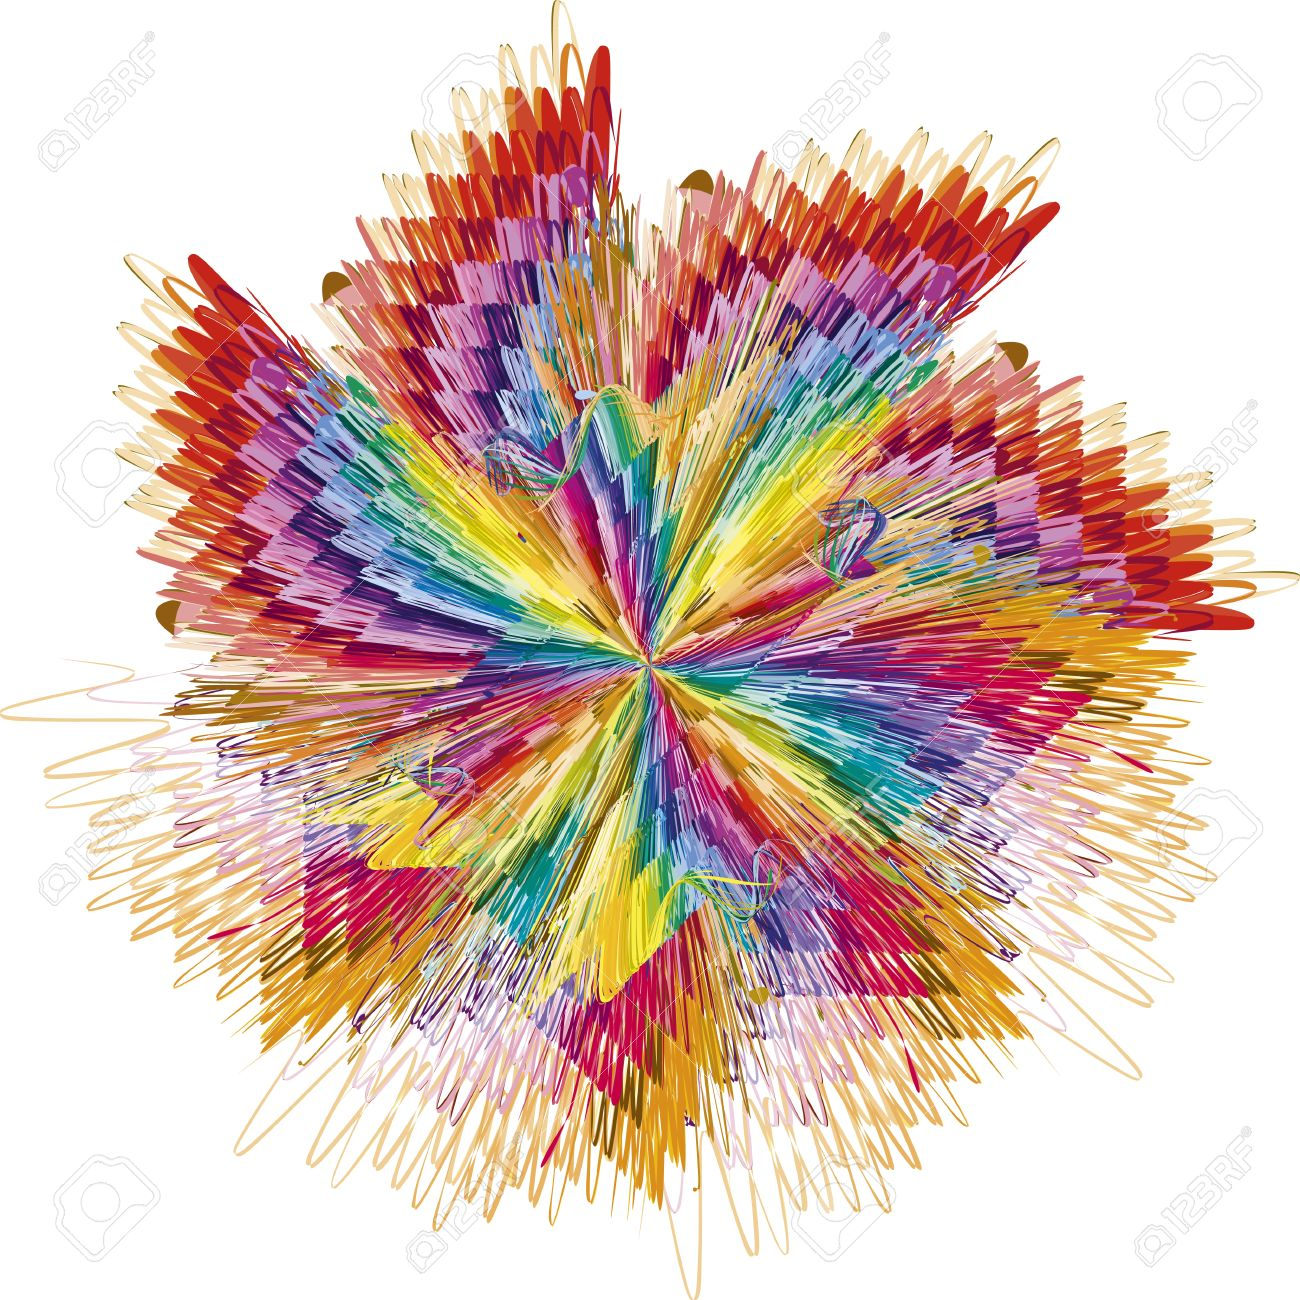 Abstract color explosion as symbol for creativity and spontaneity Stock Vector - 13828779